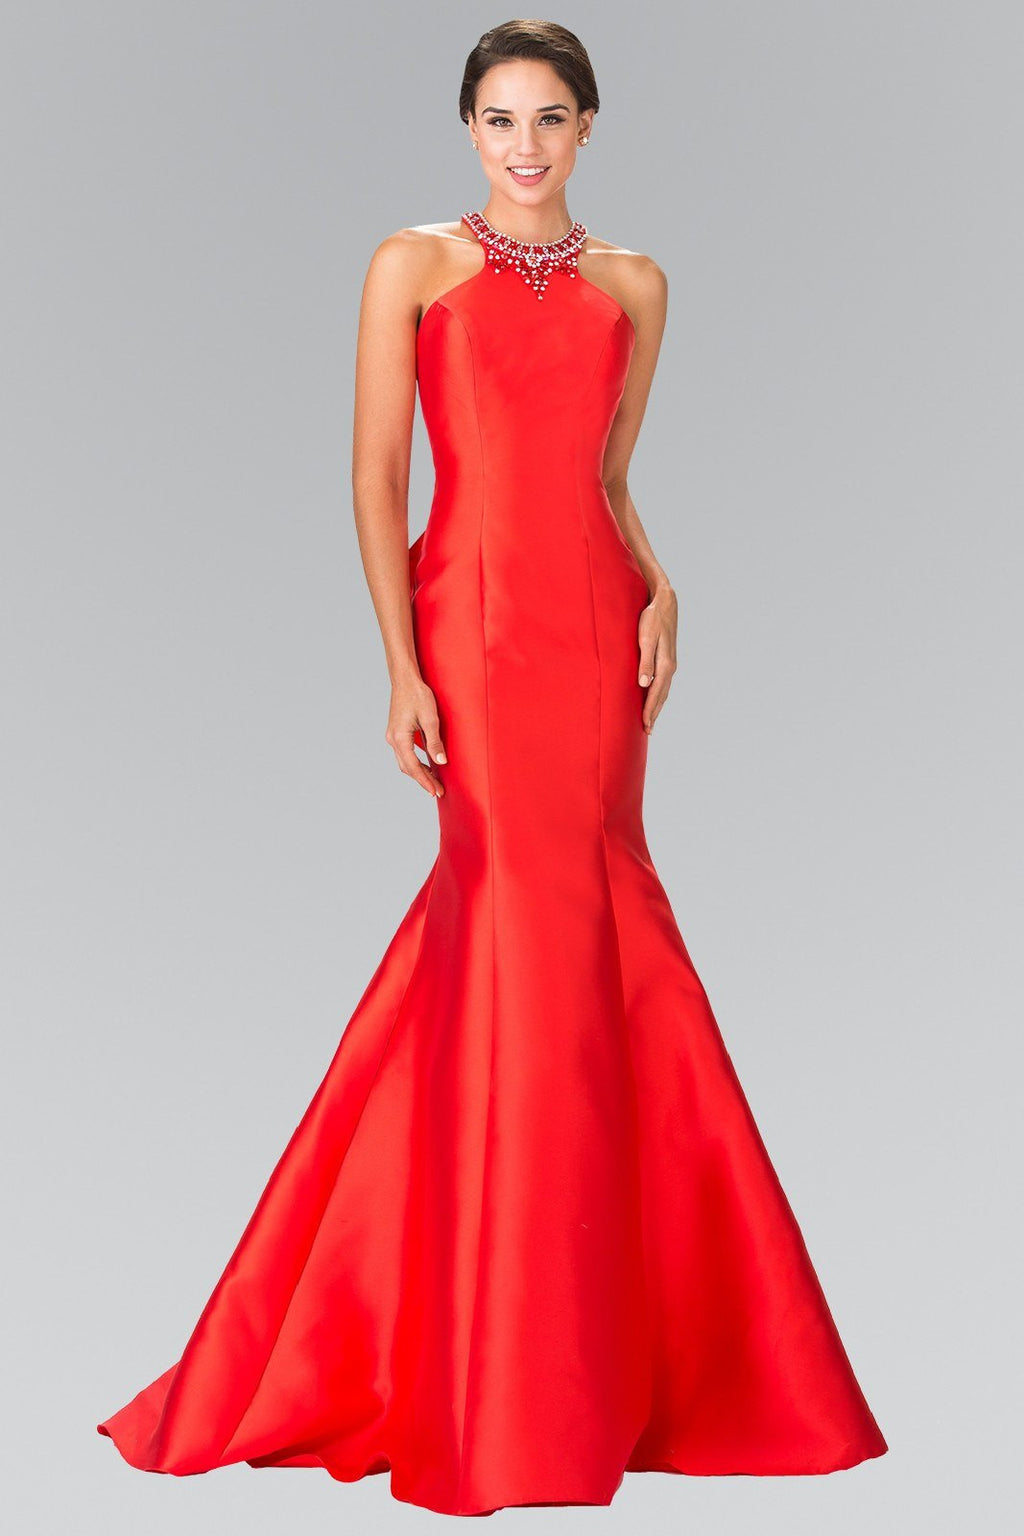 Beaded Halter Neckline Satin Mermaid Prom Dress #gl2353 - Simply Fab Dress